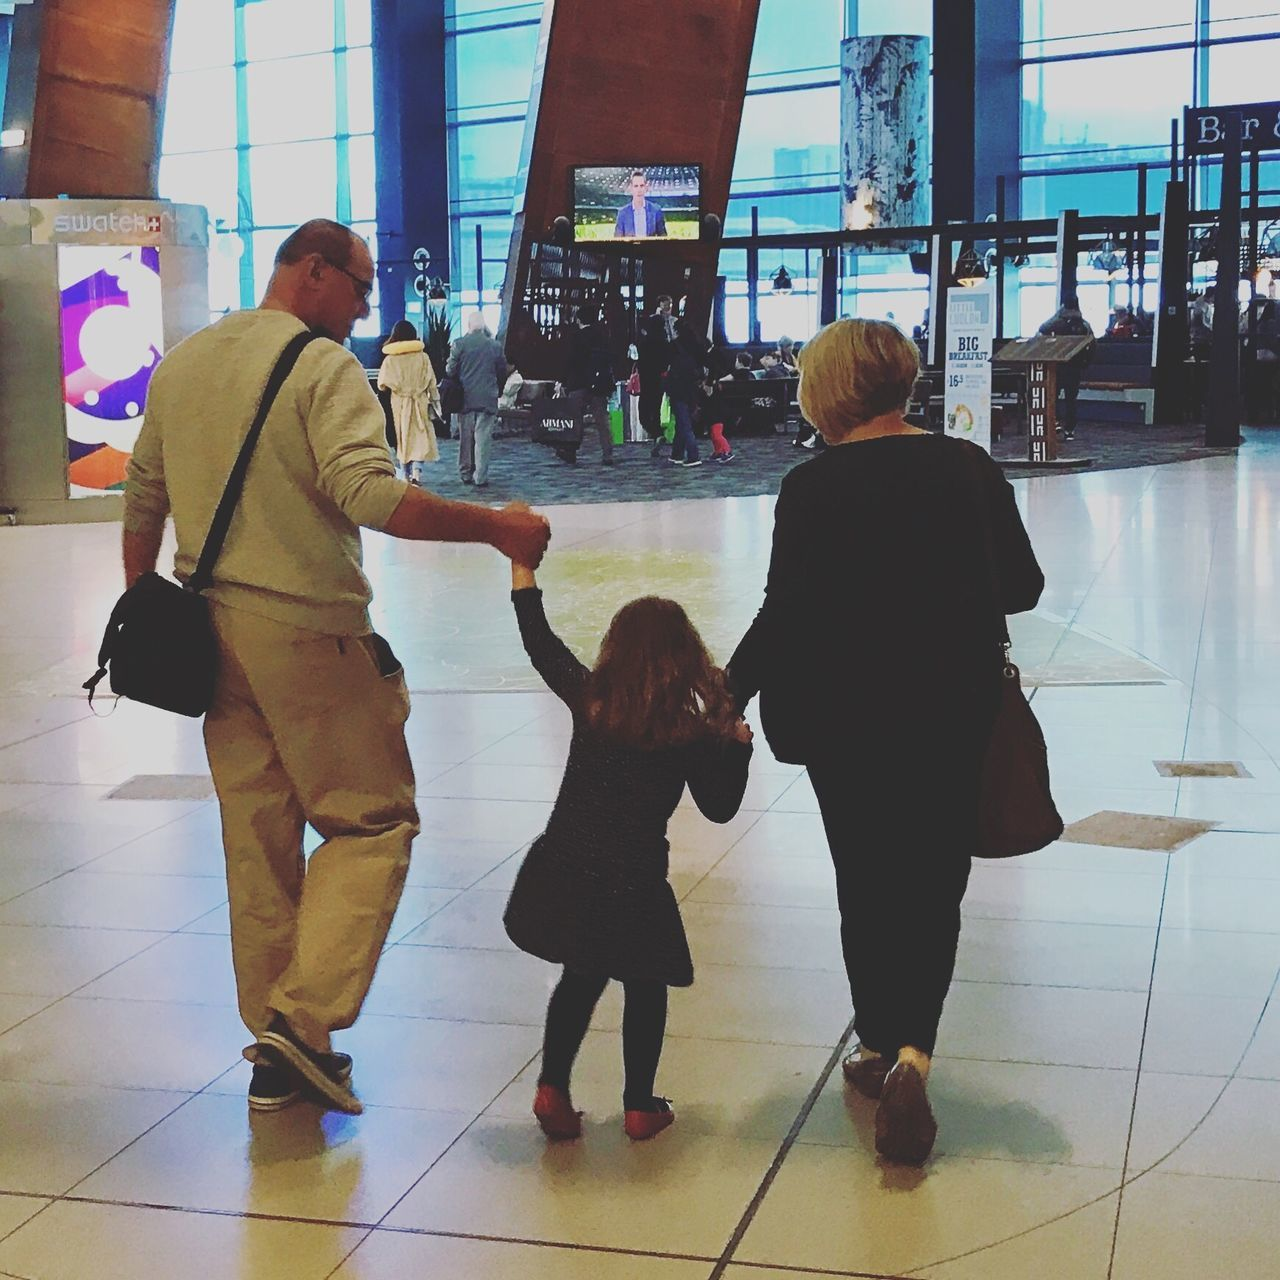 Let's Go. Together. Travelling / Airport Full Length Real People Togetherness Indoors  Casual Clothing Women Men Lifestyles Day Standing Built Structure Childhood Architecture Adult People Adults Only Airport Travel